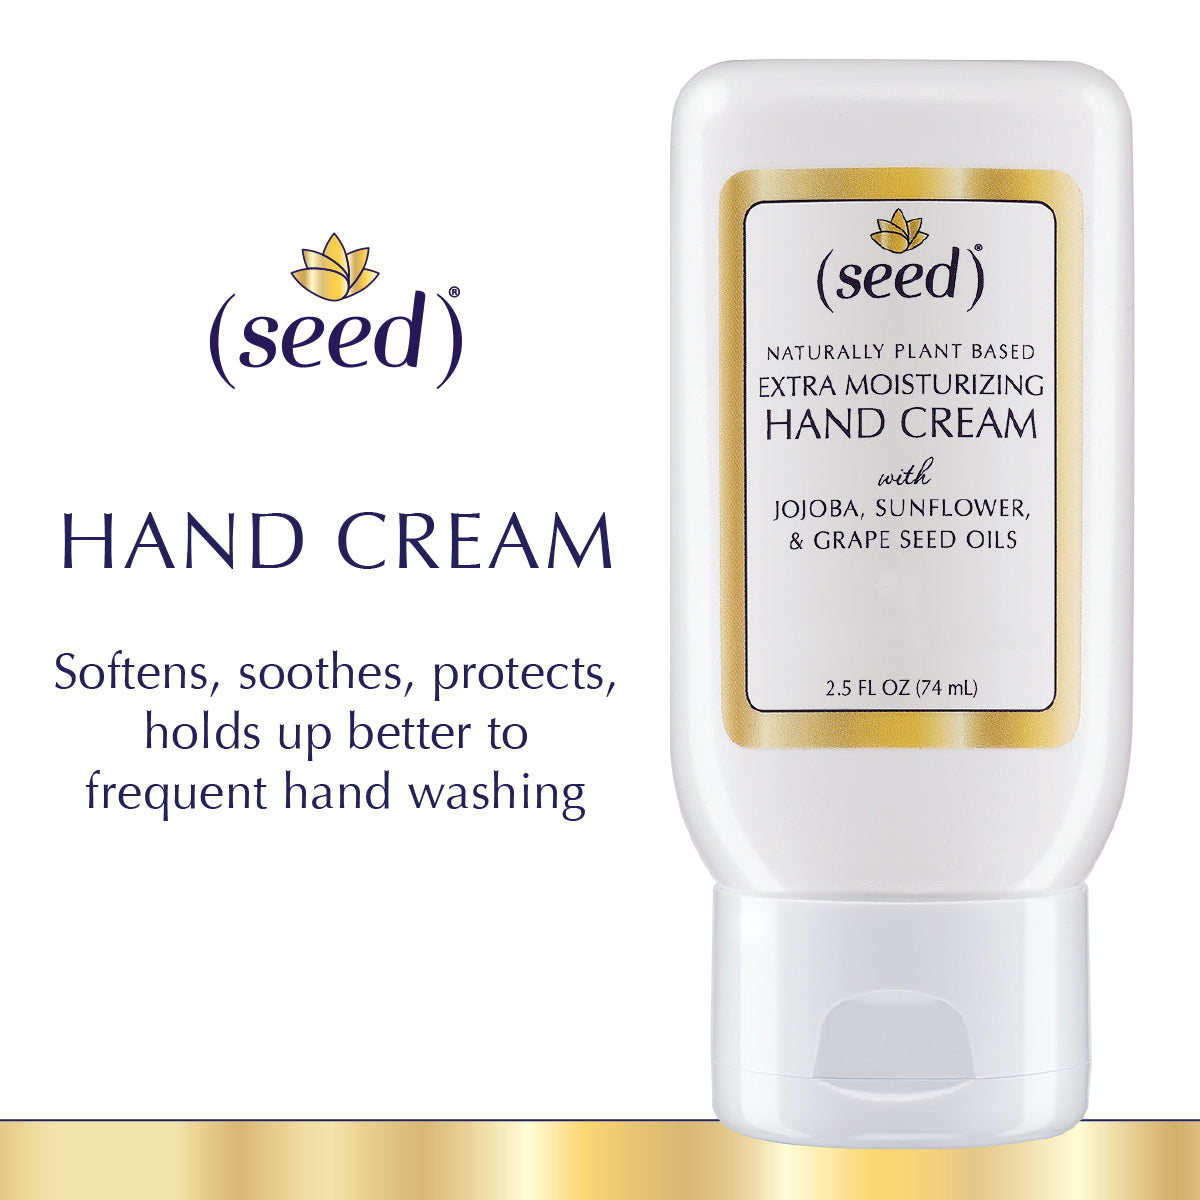 Seed Extra Moisturizing Hand Cream, formerly known as Seed Healthy Hand Cream